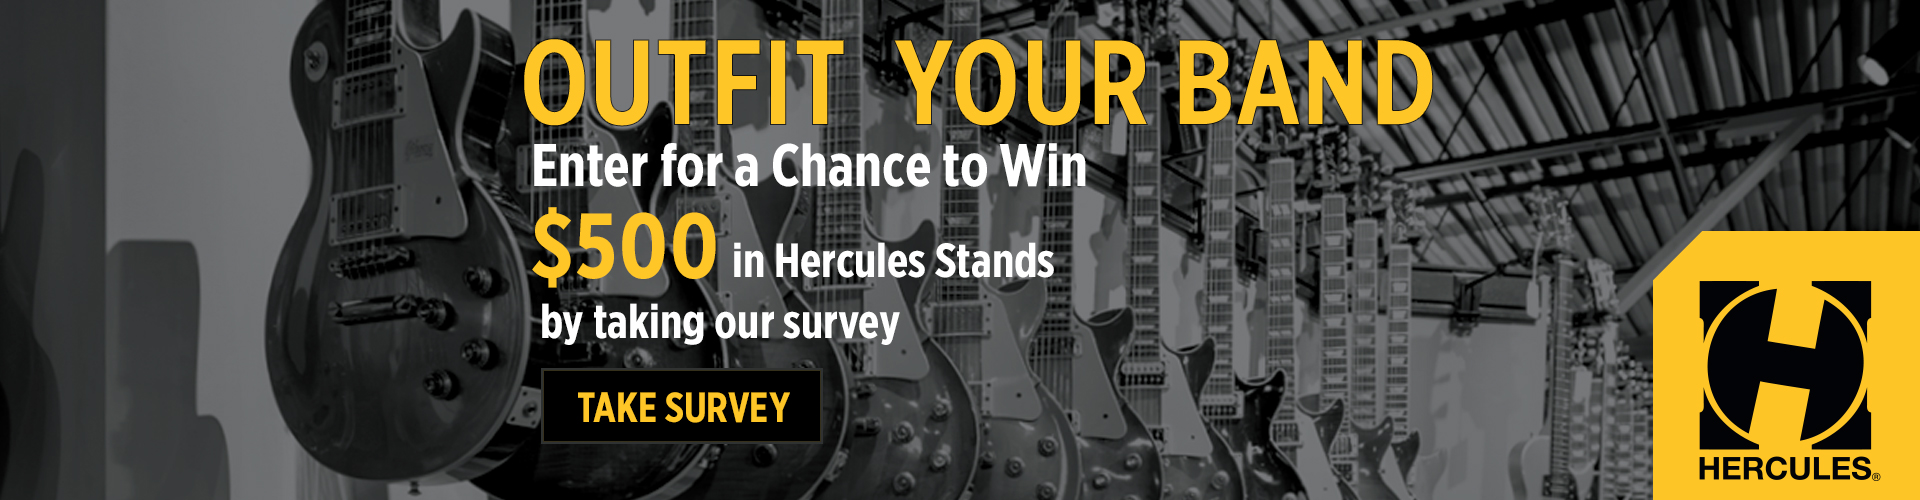 Outfit Your Band Sweepstakes